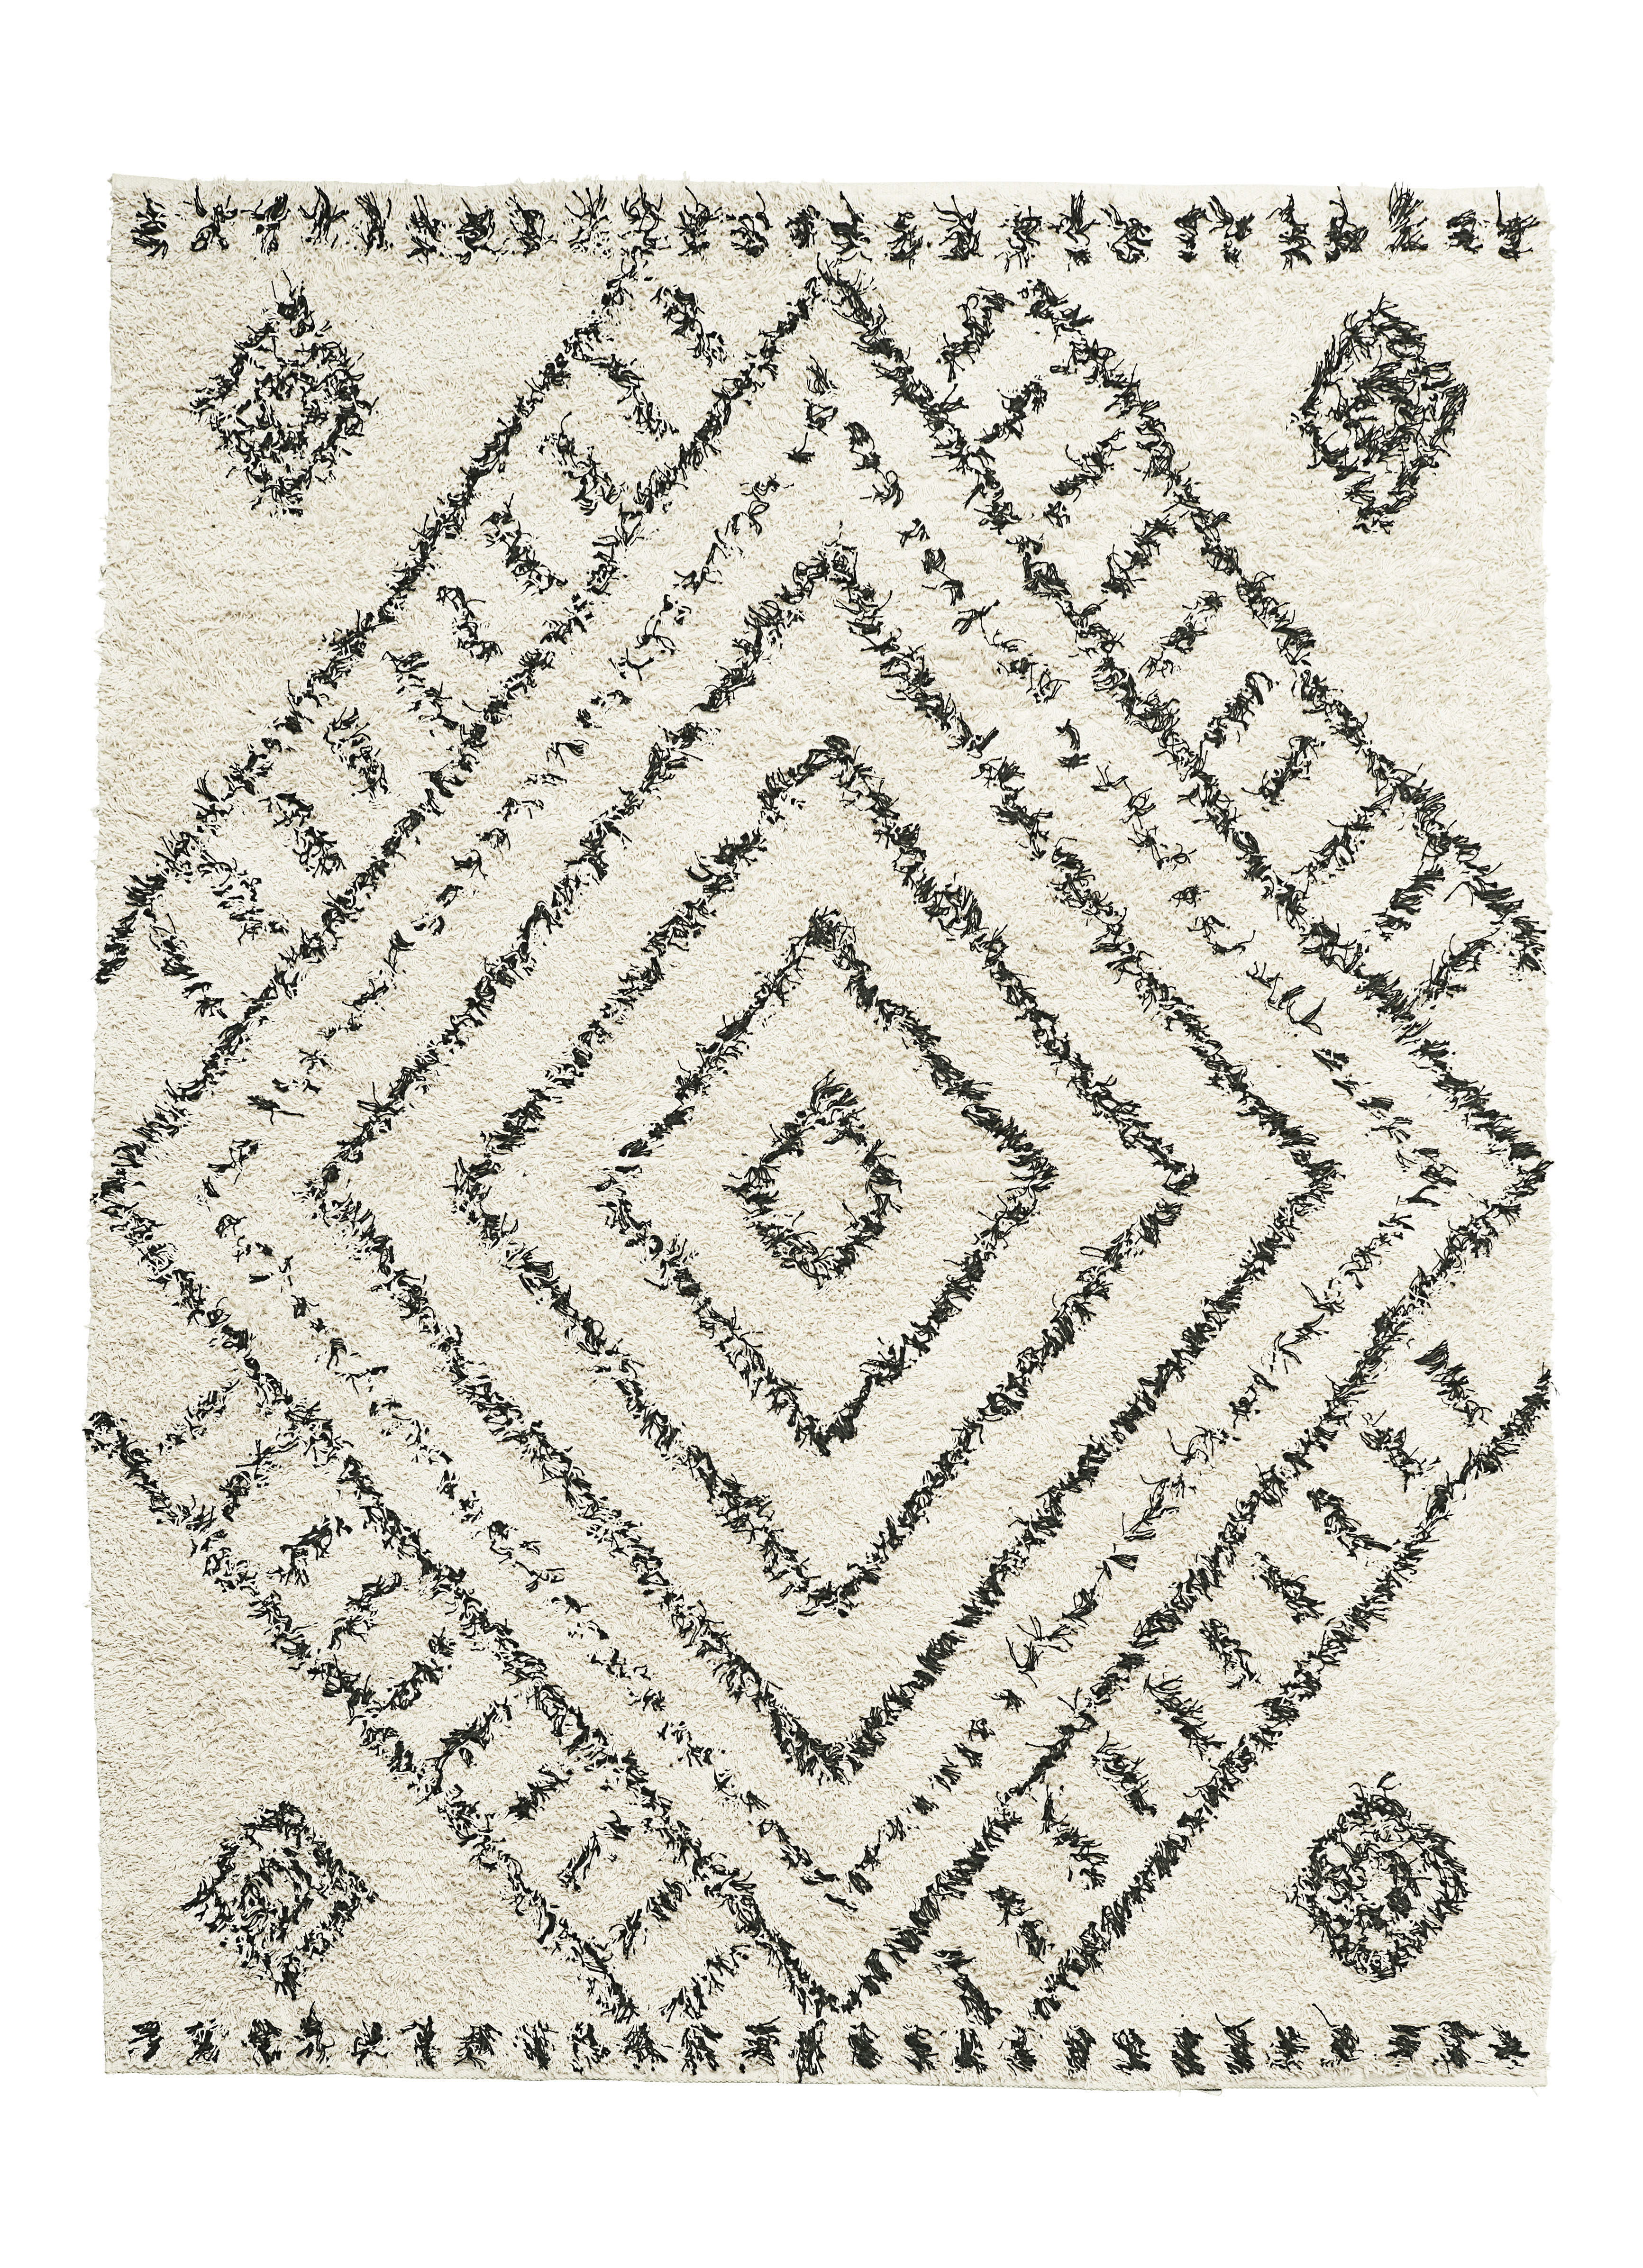 Decoration - Rugs - Nubia Rug - / 160 x 210 cm by House Doctor - White / Black patterns - Cotton